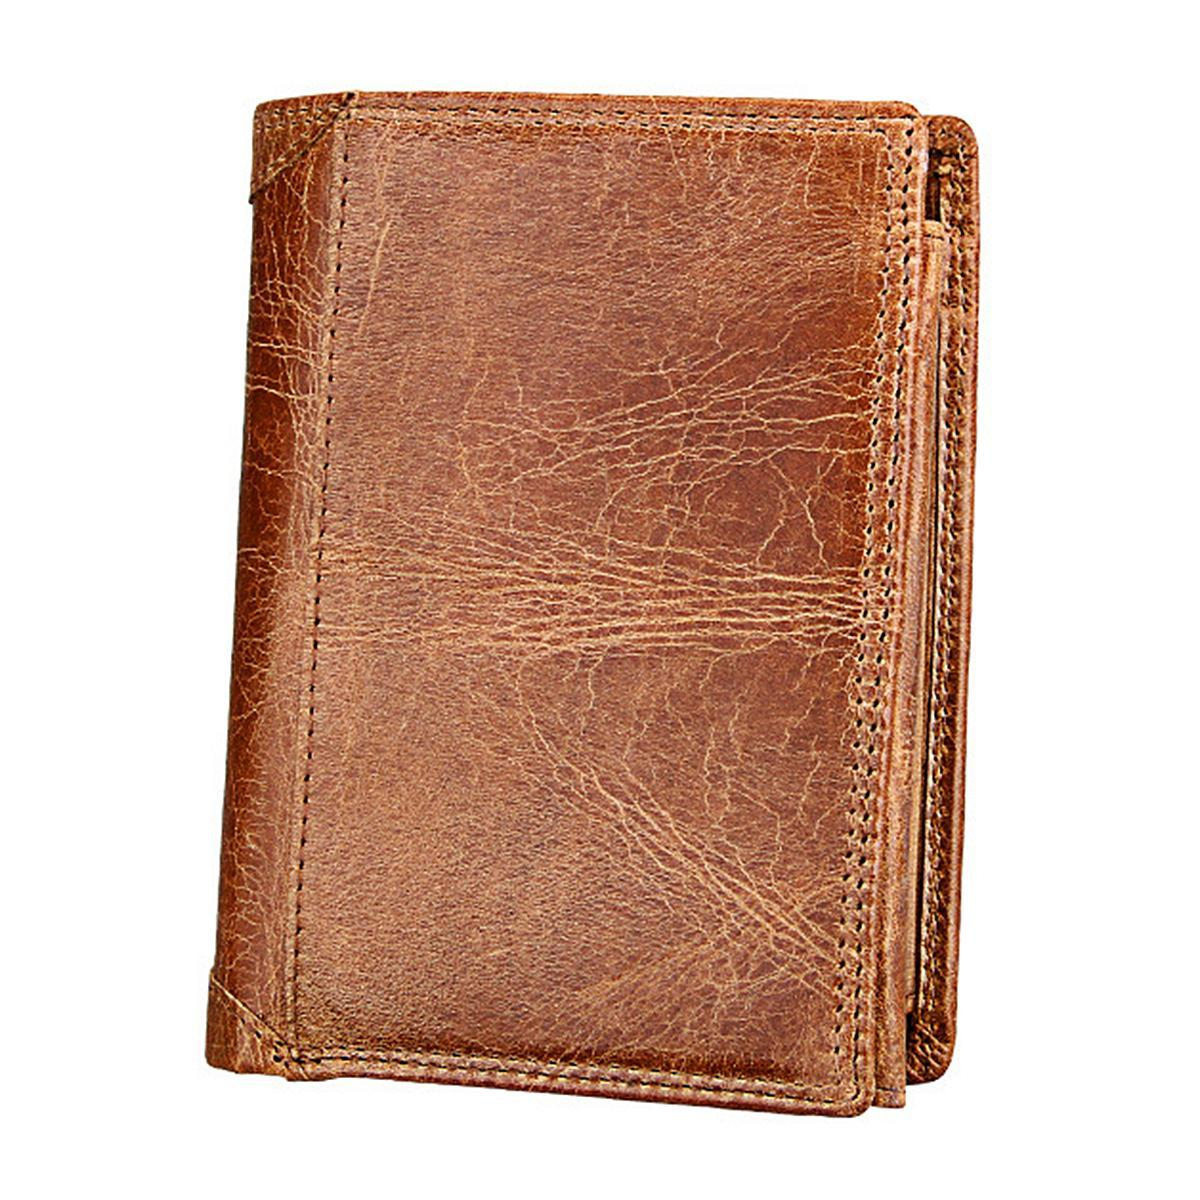 Folding Short Style Anti-Theft Anti-RFID Men's Leather Wallet Purse - Brown